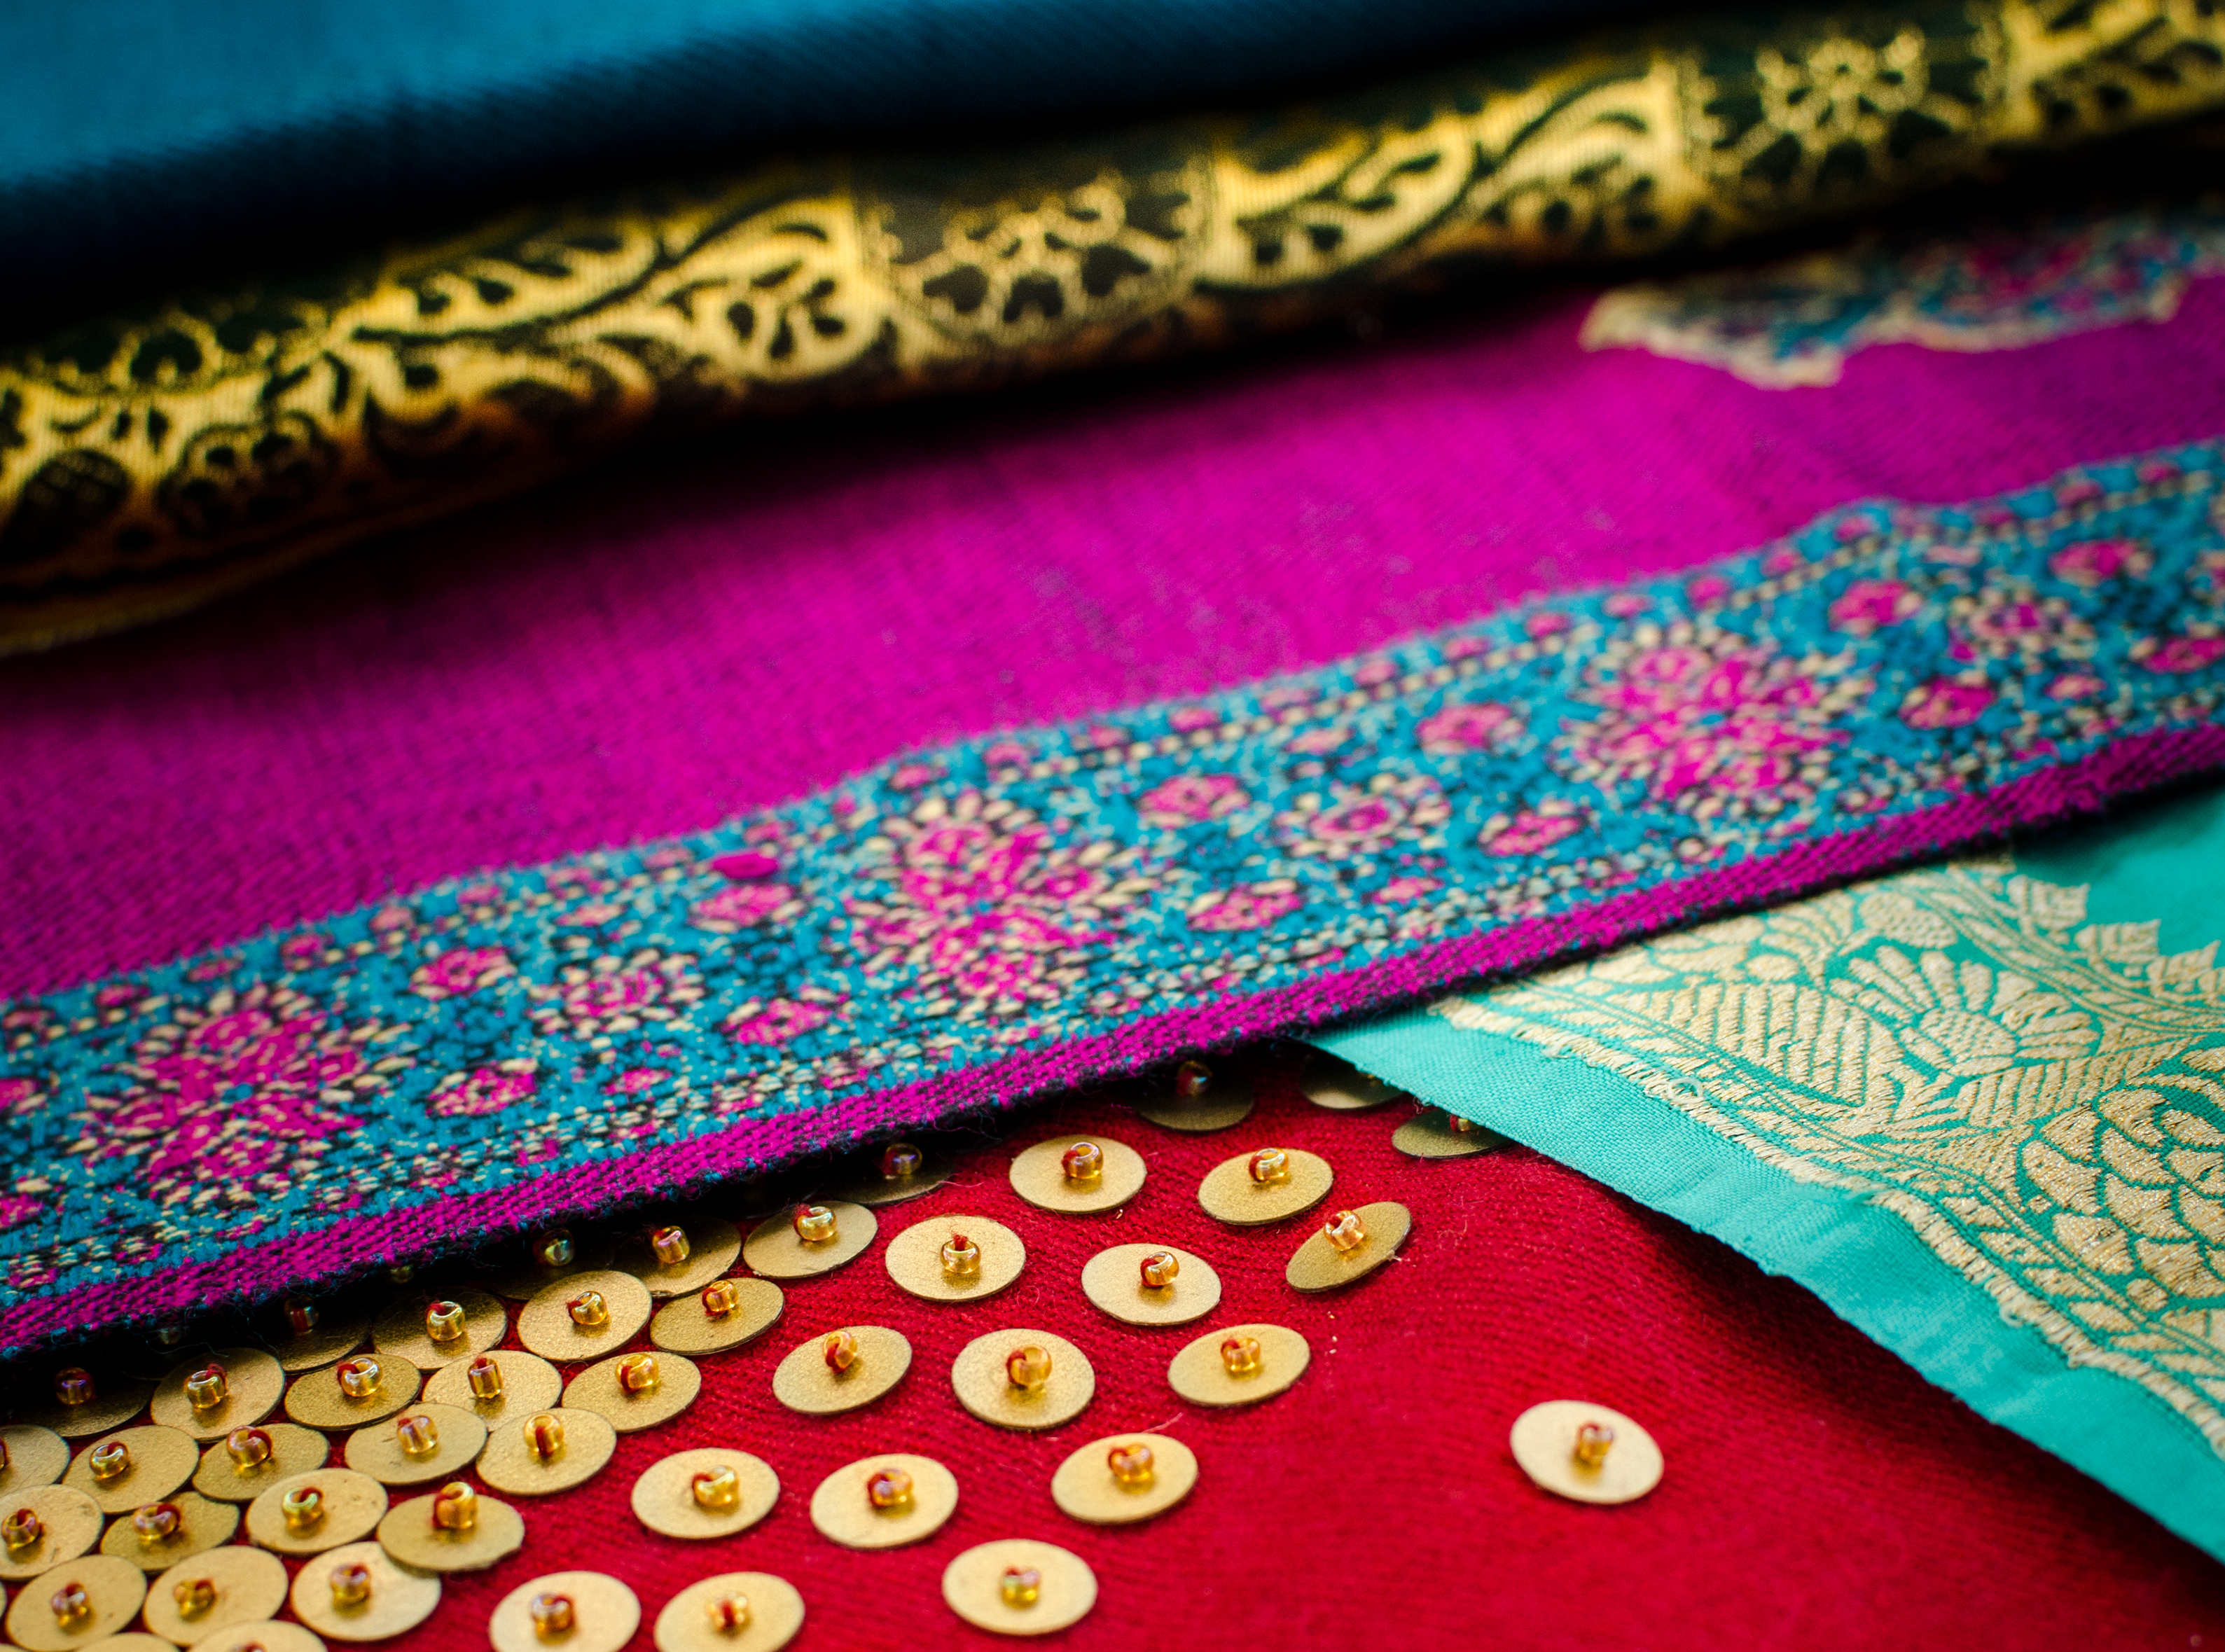 Original photography of colorful Indian sari fabrics for use on Caravale event collateral and presentations